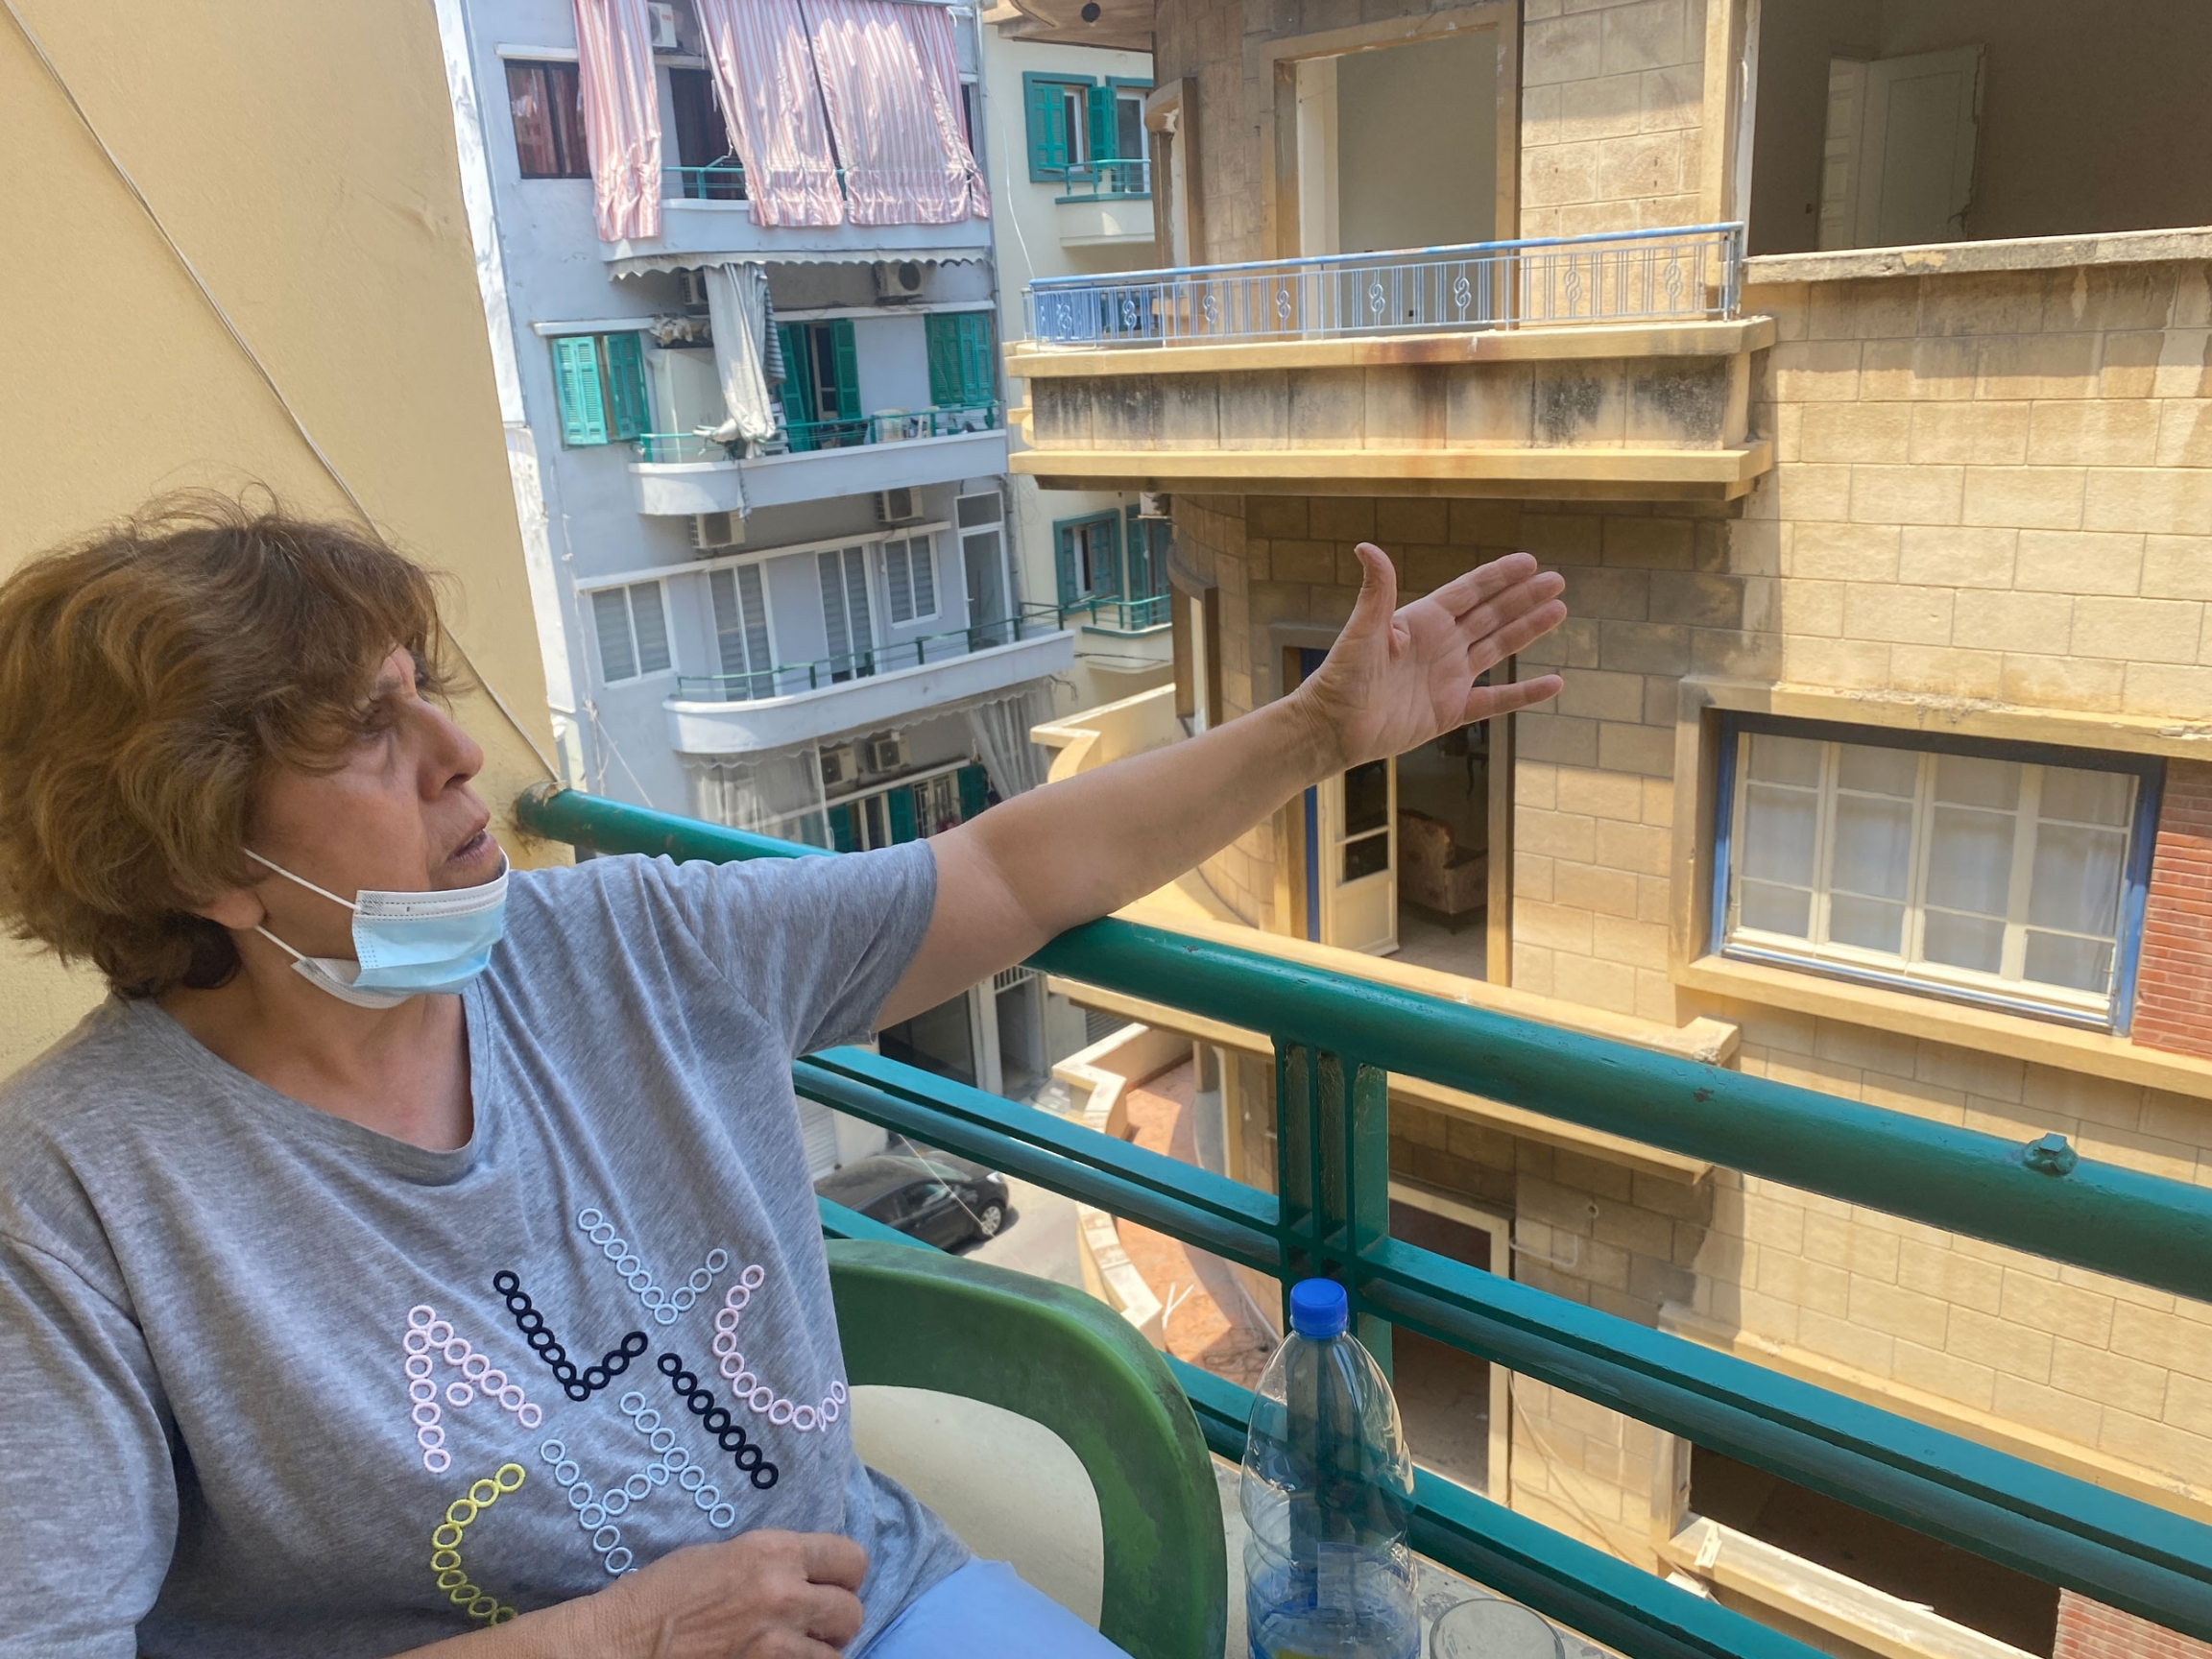 In the days after the blast, Norma Irani refused to leave her windowless, doorless home.